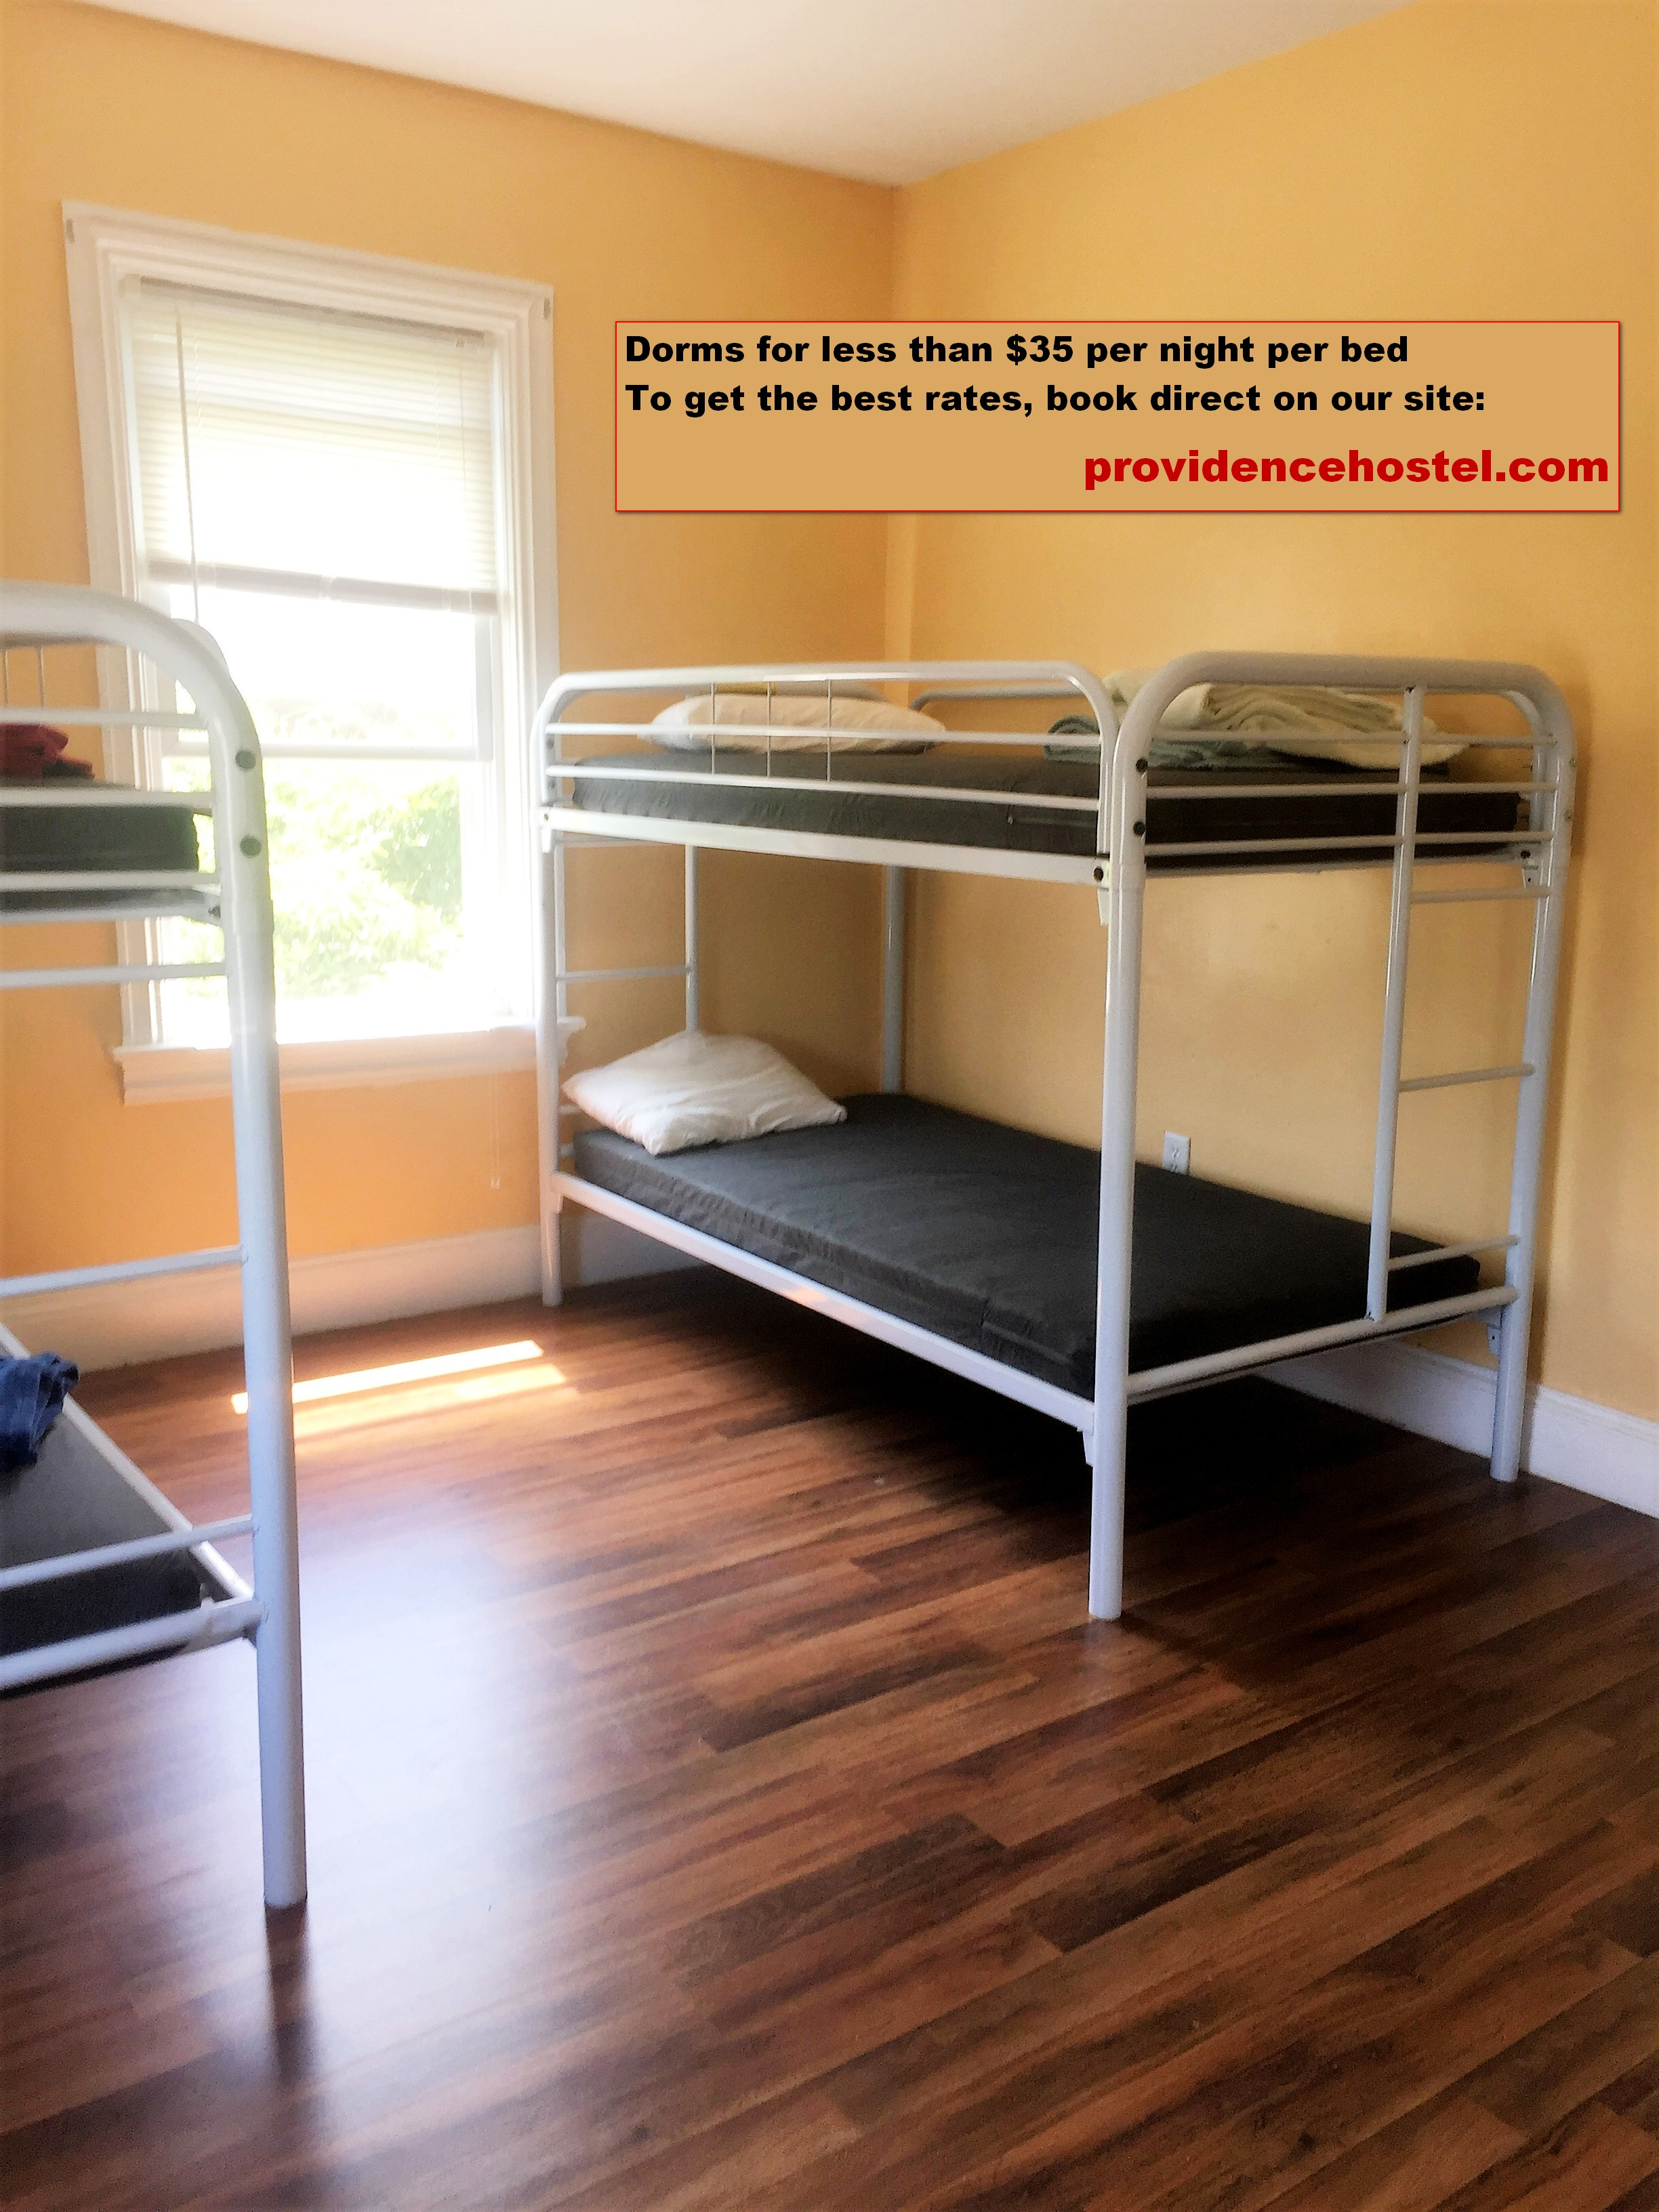 Cheap dorm rates